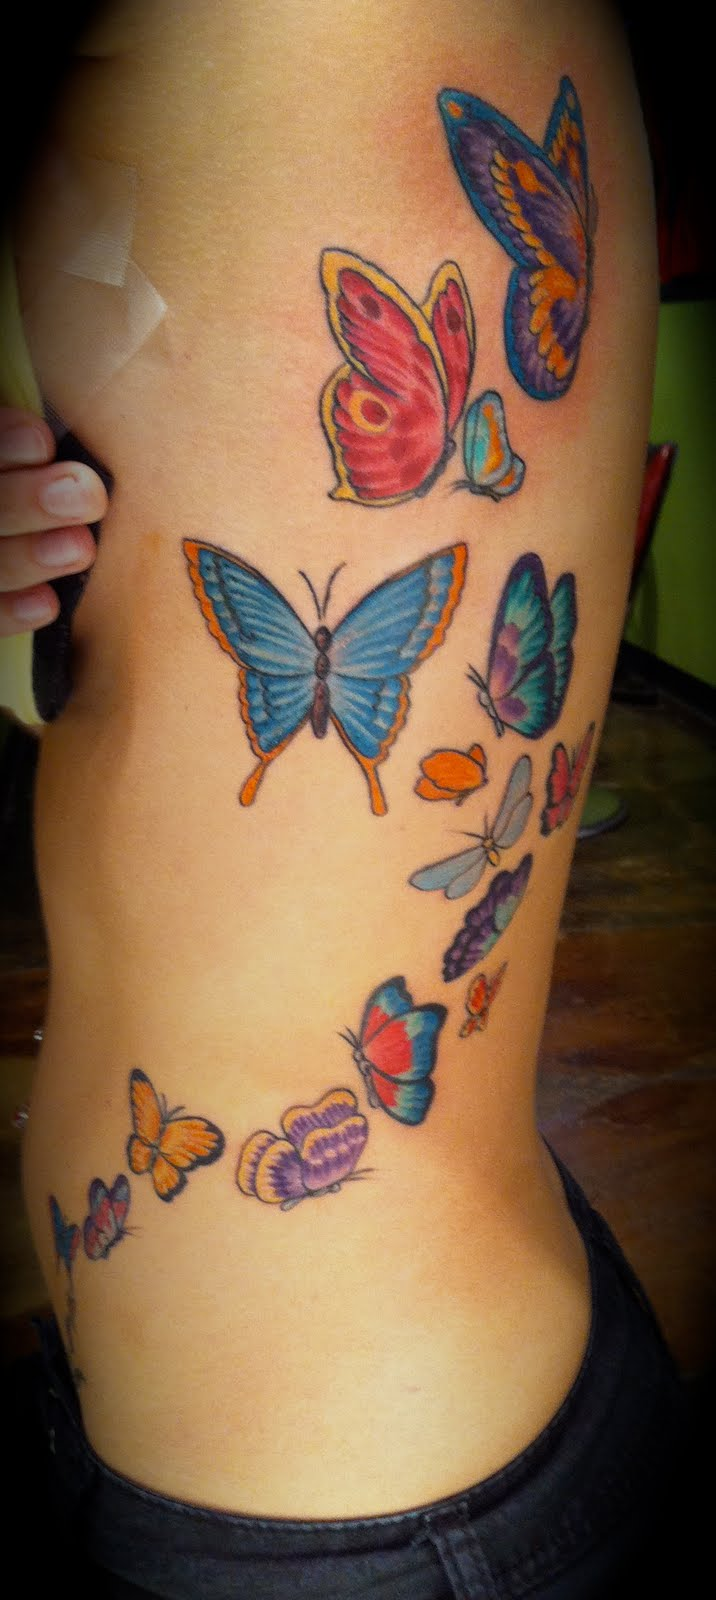 http://www.tattoobite.com/wp-content/uploads/2013/10/colorful-butterflies-tattoo-on-rib-side.jpg